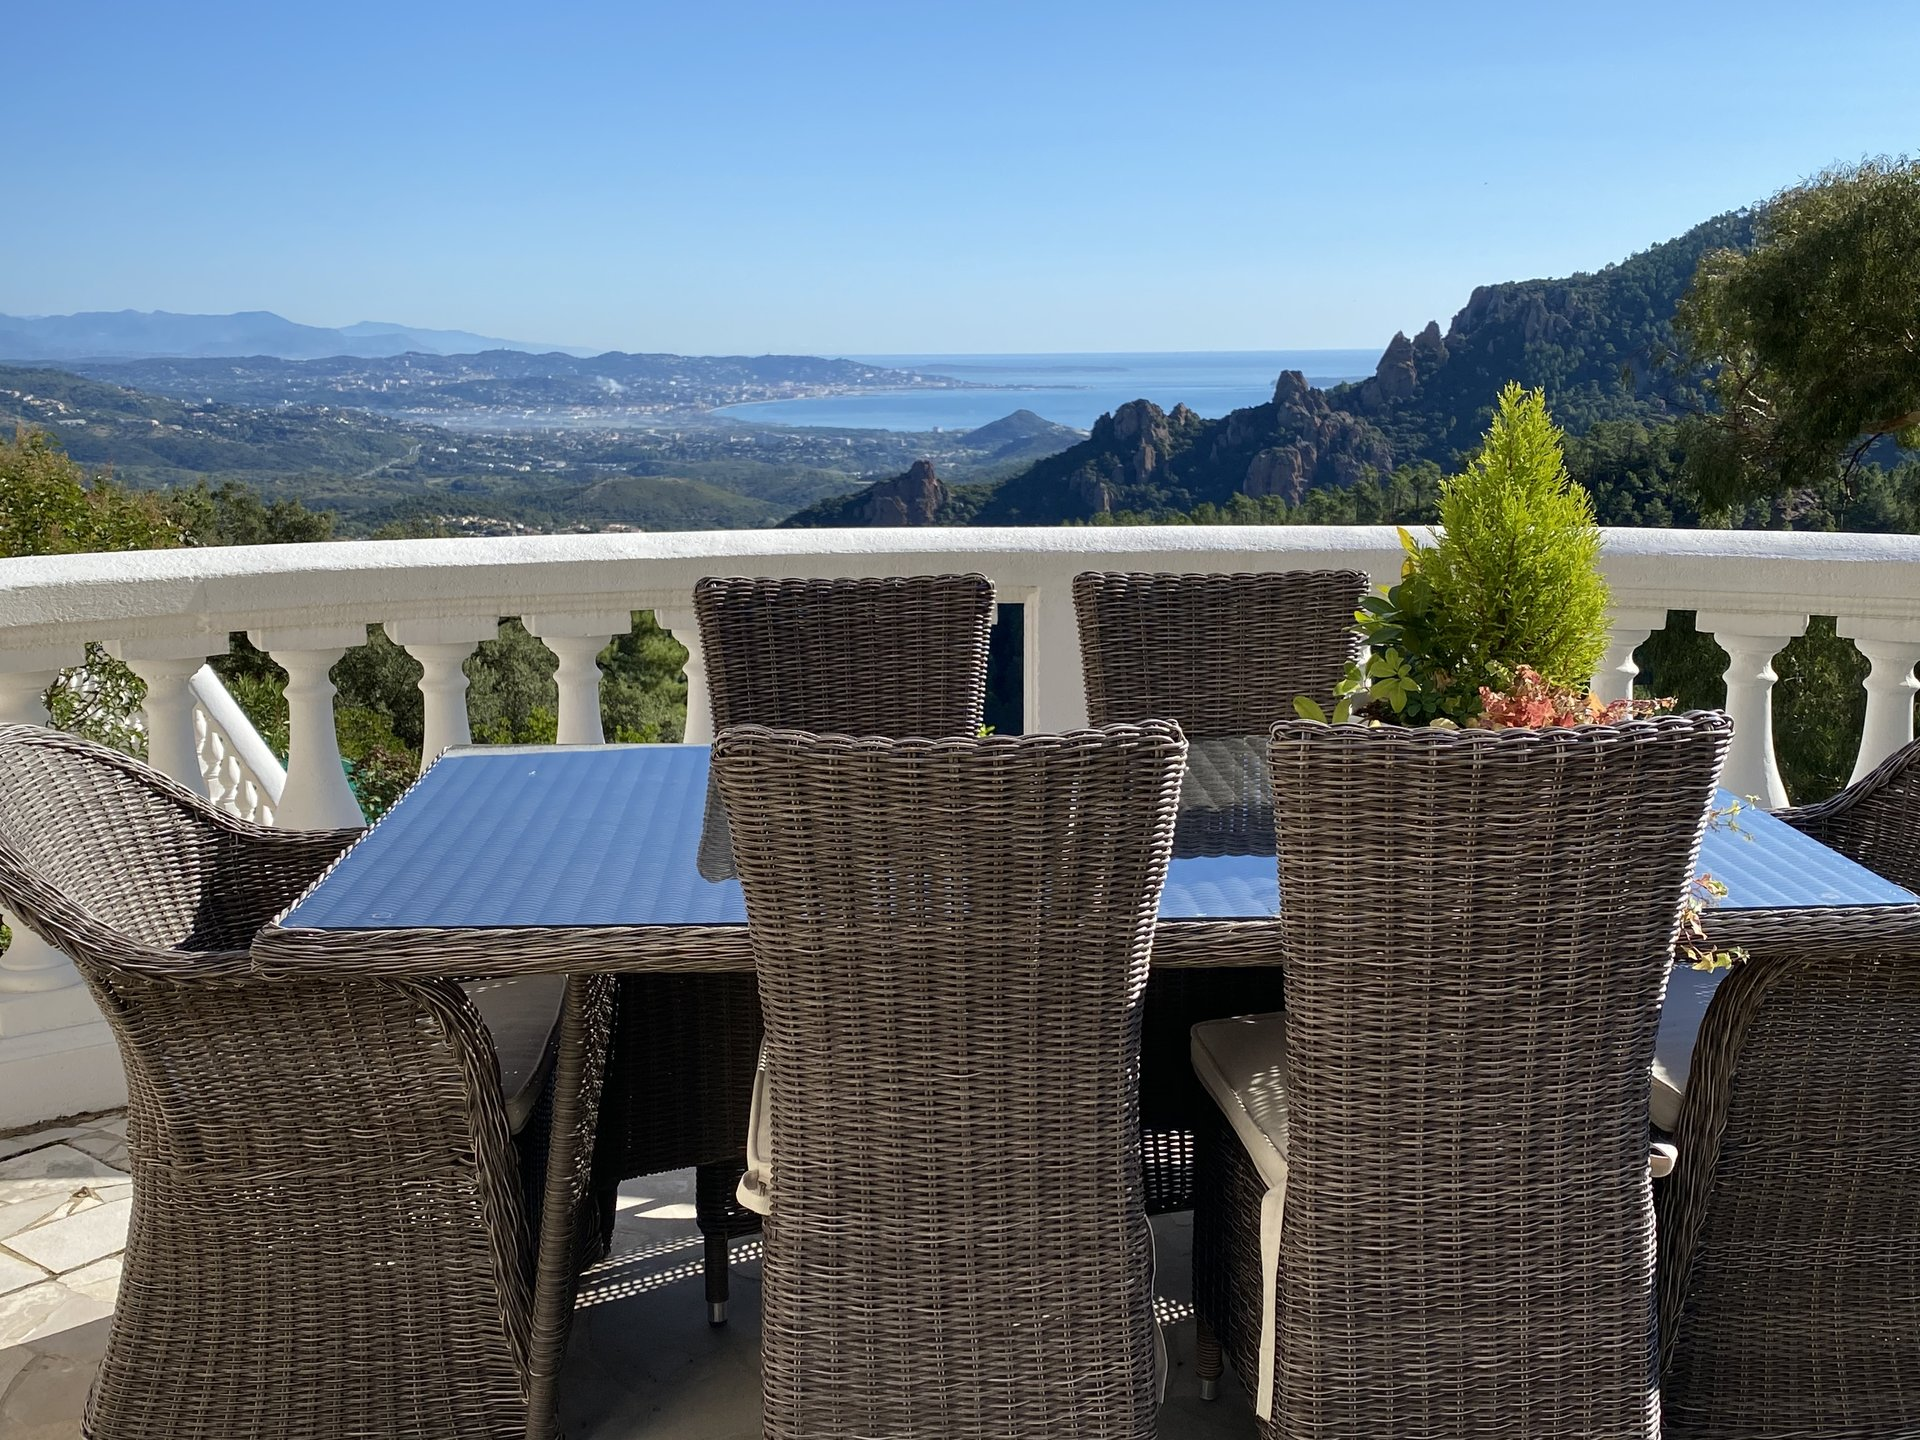 AMAZING VIEW OVER THE SEA AND ESTEREL!